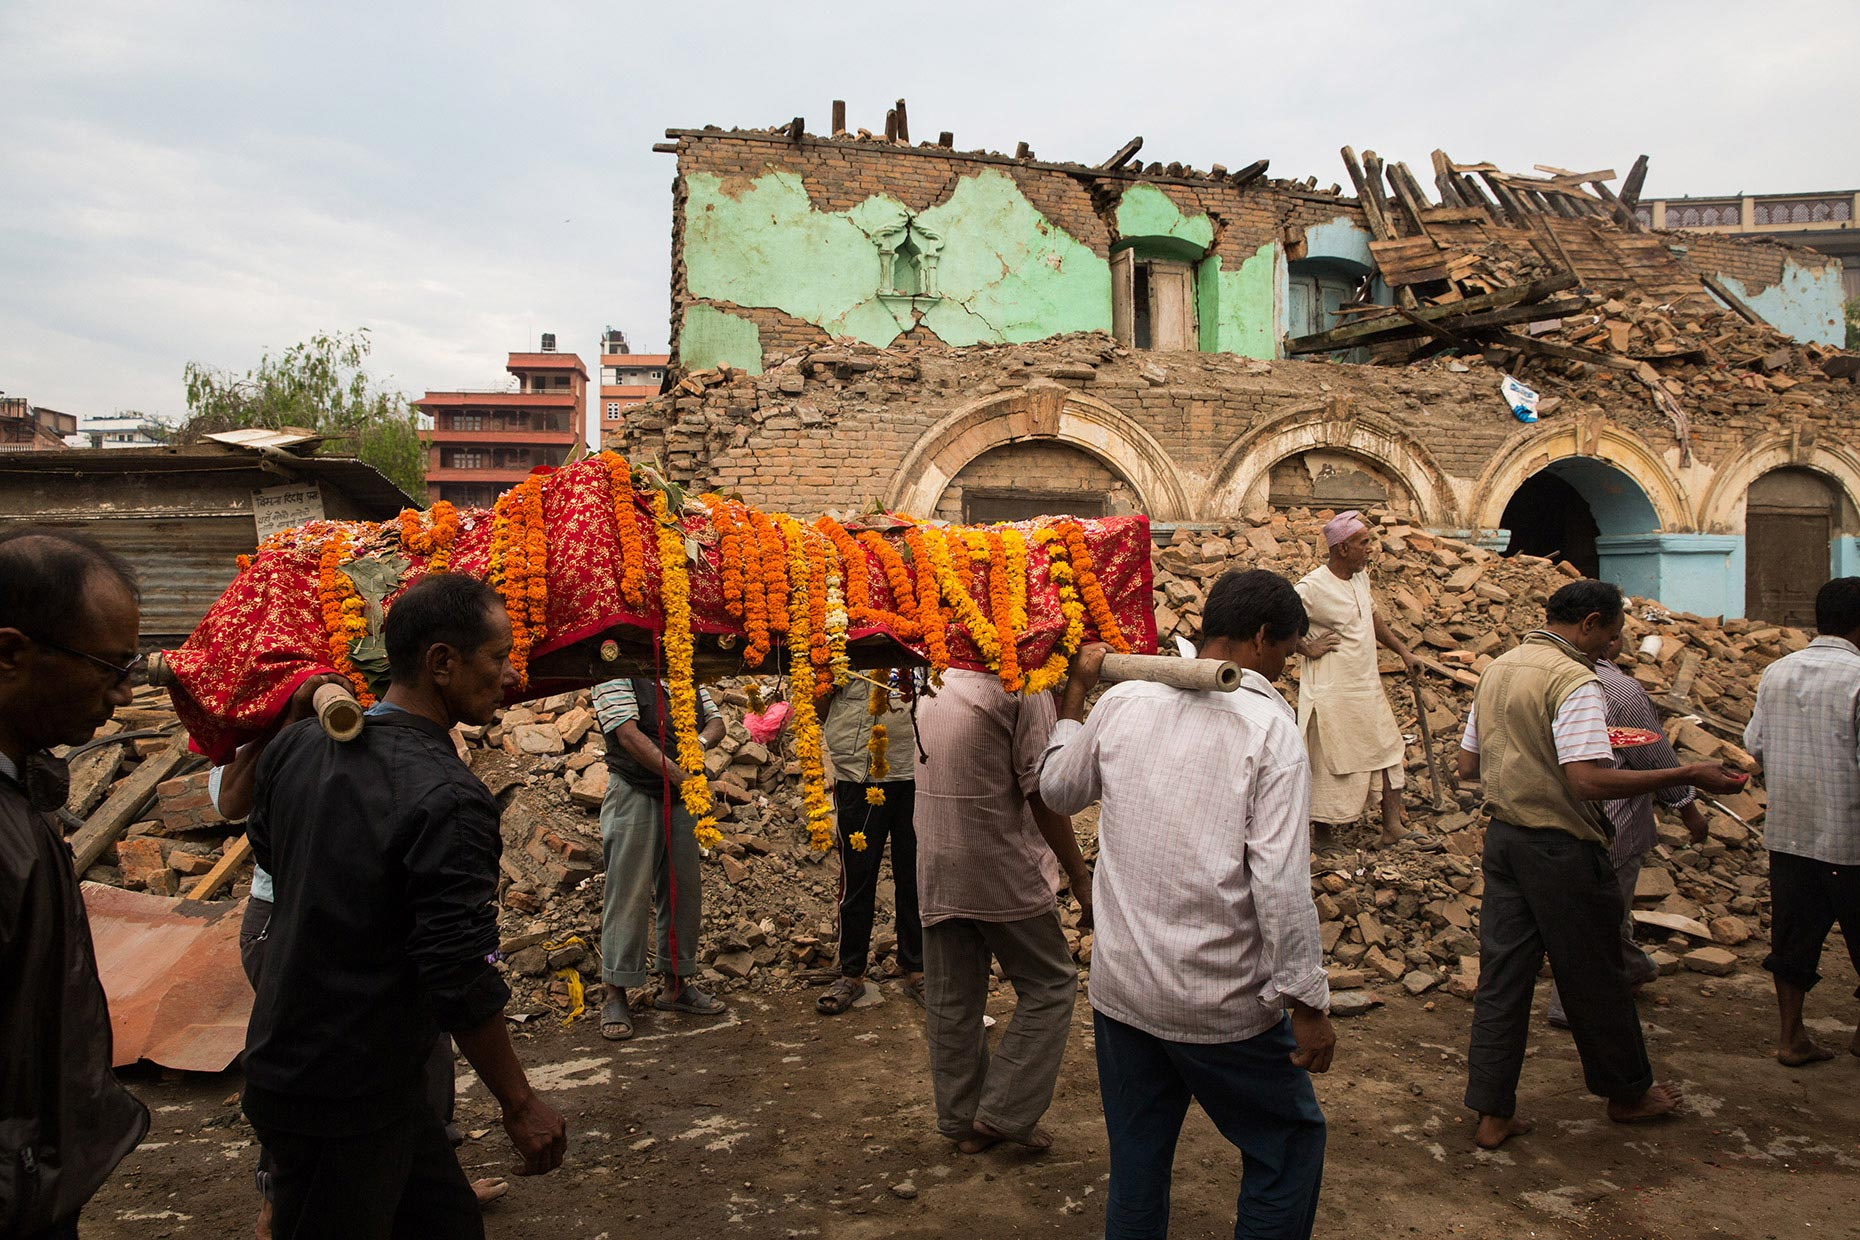 Sam-Reinders-Nepal-Earthquake_20